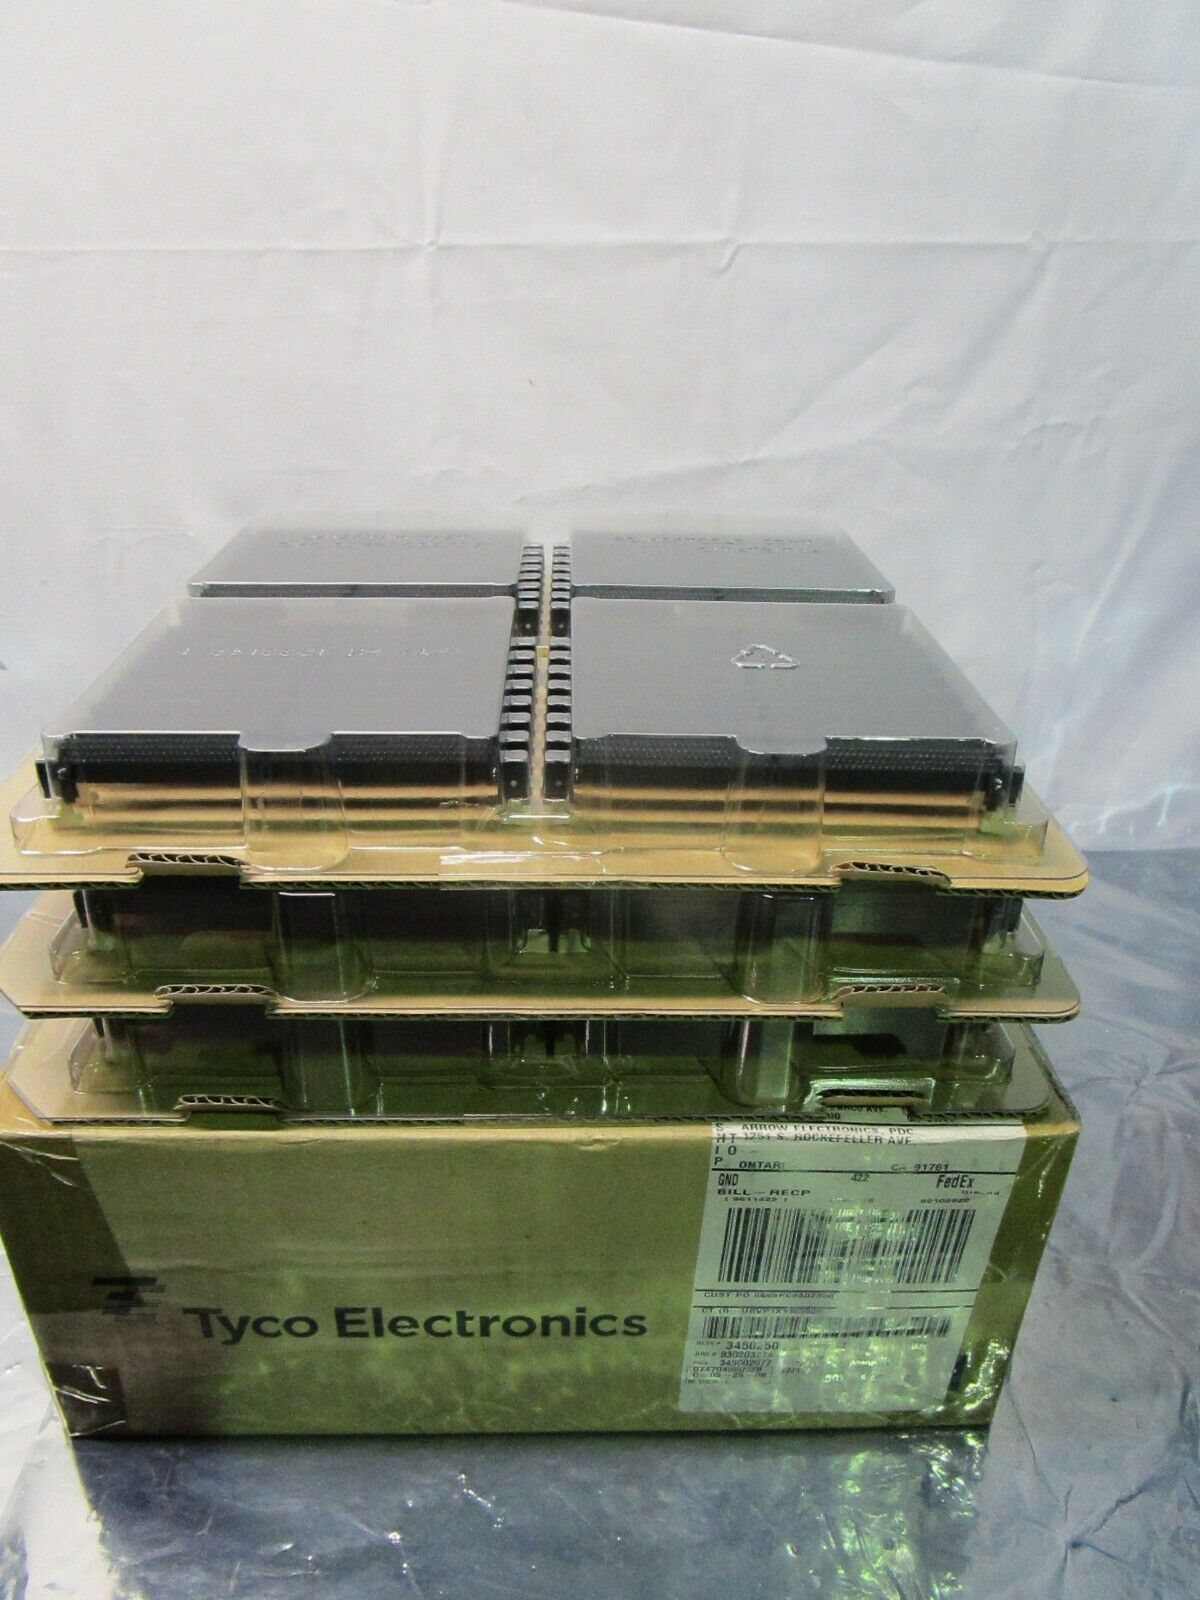 1 Lot of 96 Tyco Electronics 1658912-3 DDR DIMM ELECTRIVCAL CONNECTOR, 102520